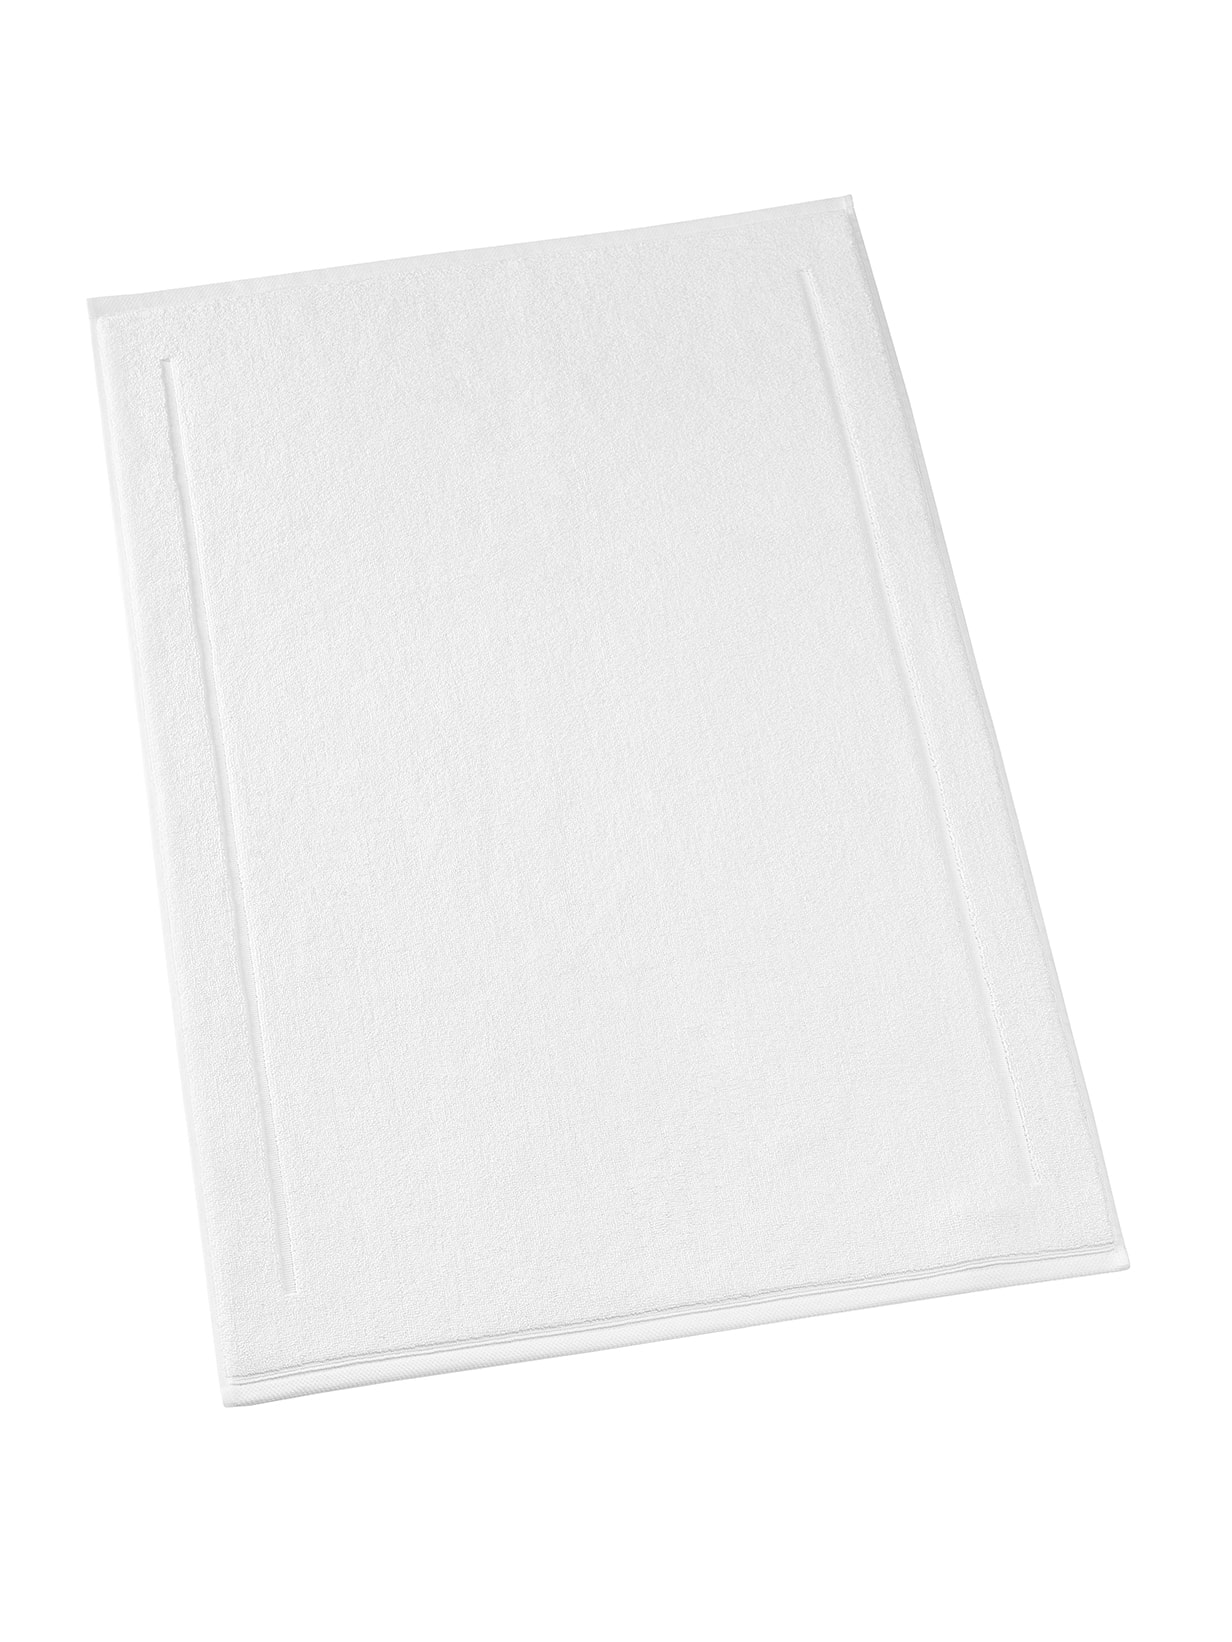 Excellence badmat 60x100 white